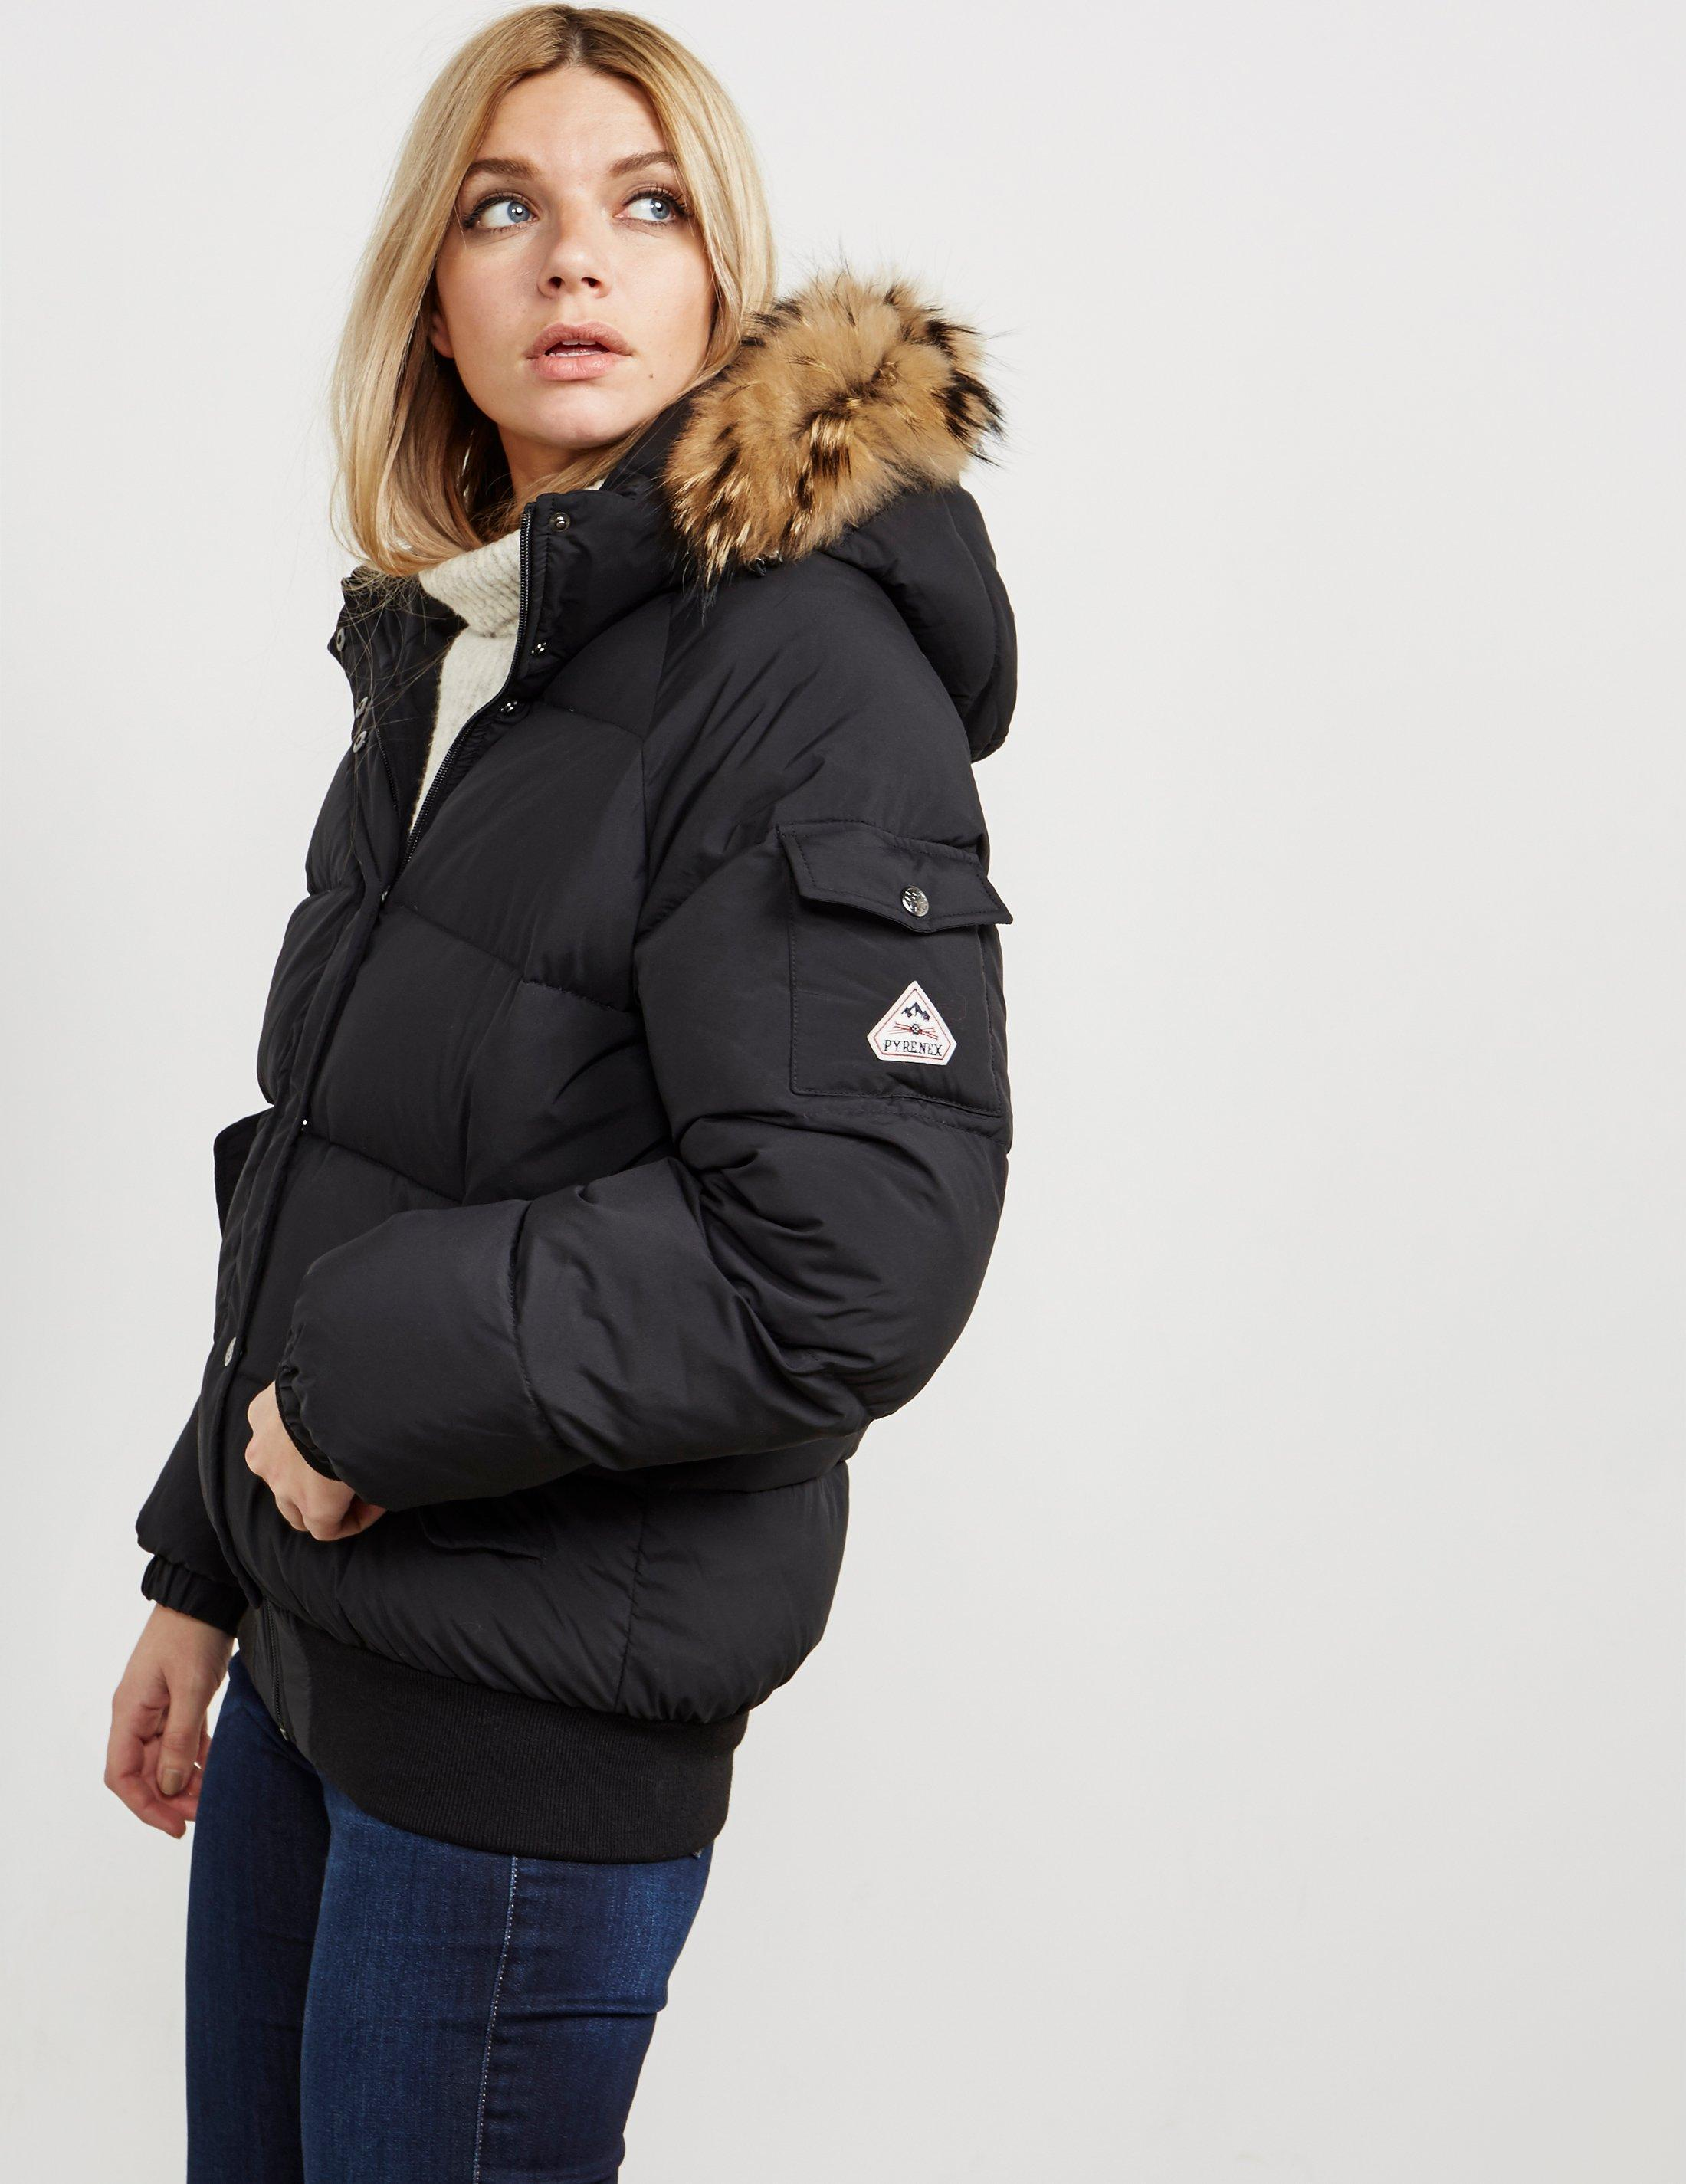 d62c25452 Women's Aviator Padded Jacket Black